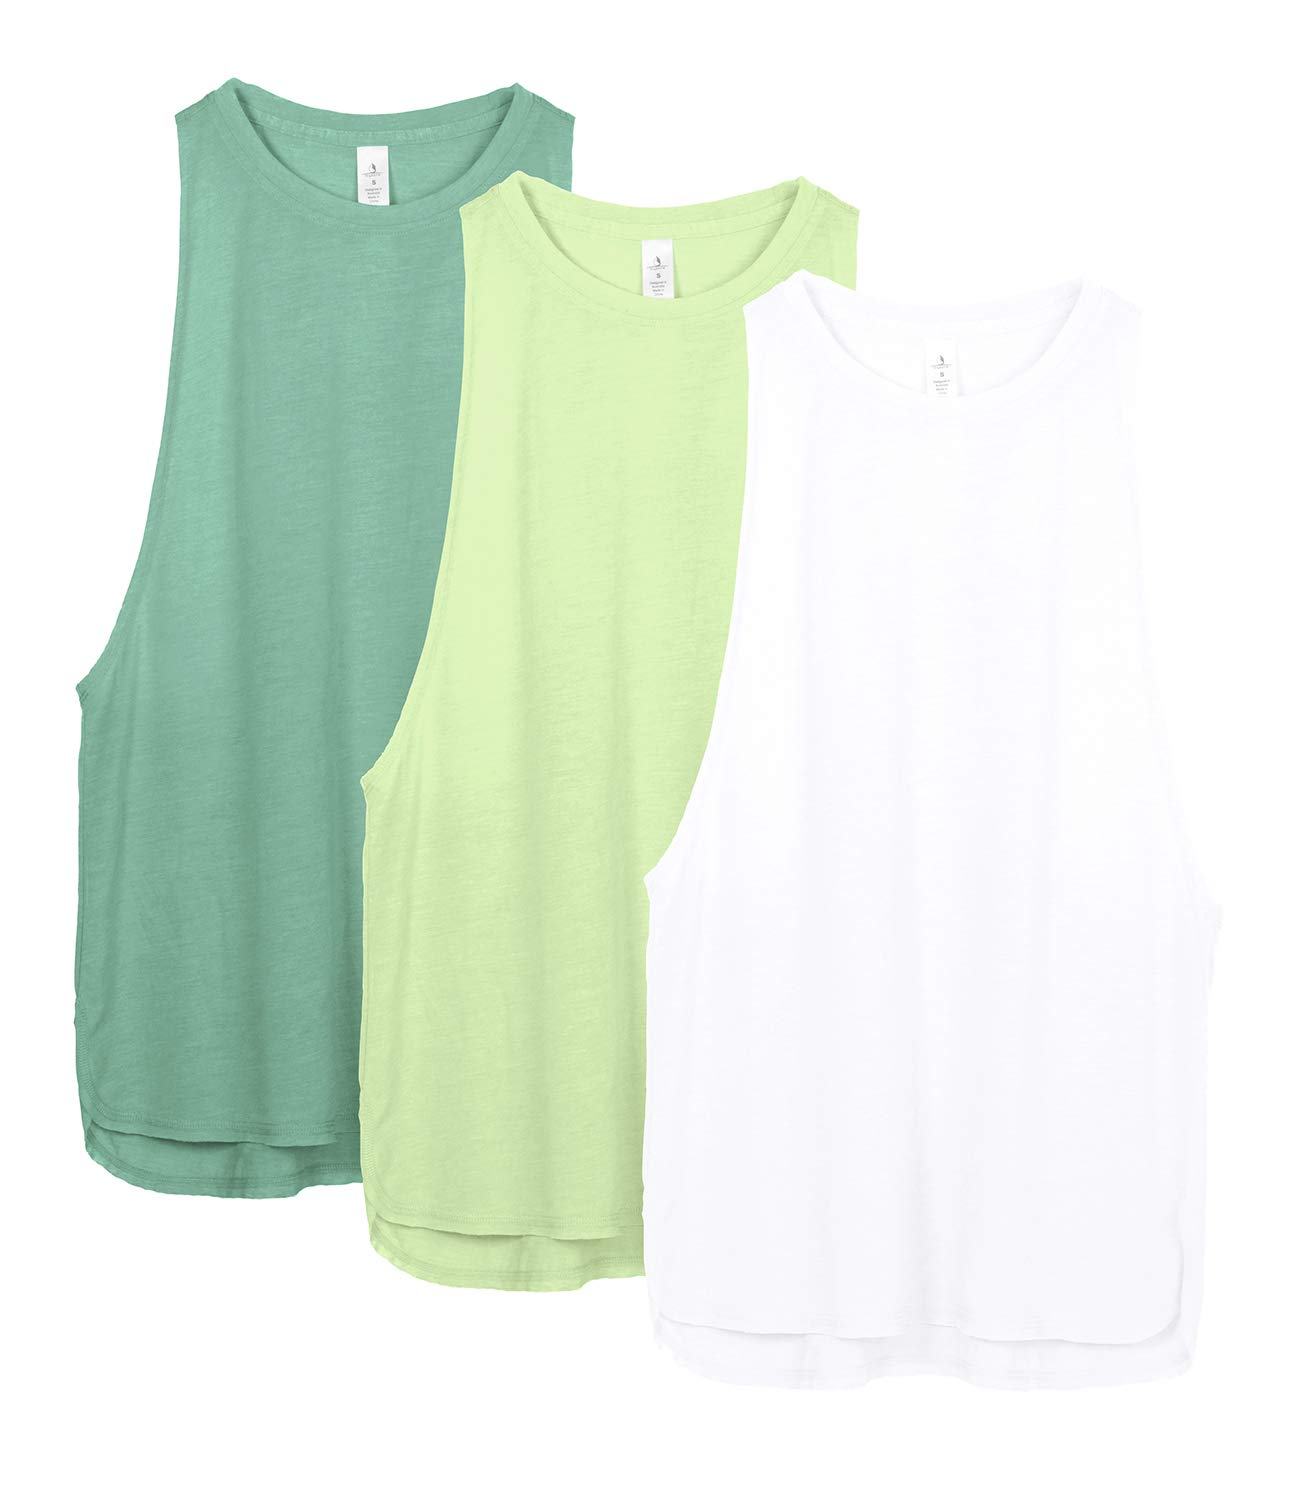 icyzone Yoga Tops Activewear Workout Clothes Sports Racerback Tank Tops for Women (XS, White/Green/Pistachio Green)